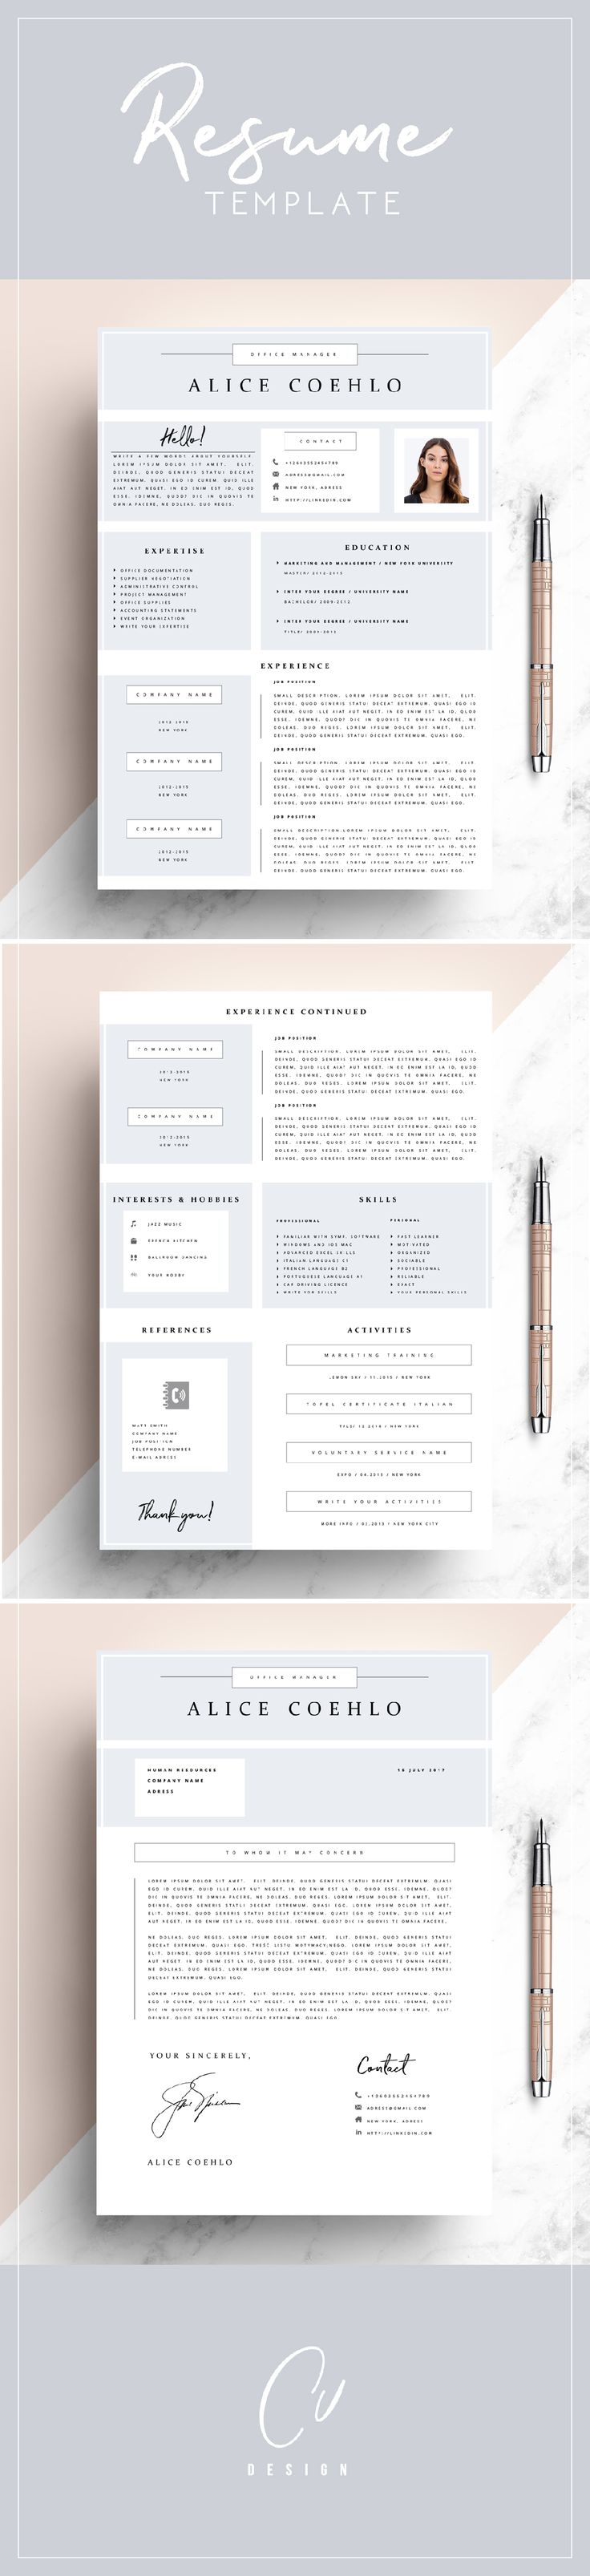 professional resume template cv template editable in ms word and pages instant digital download size a4 and us letter